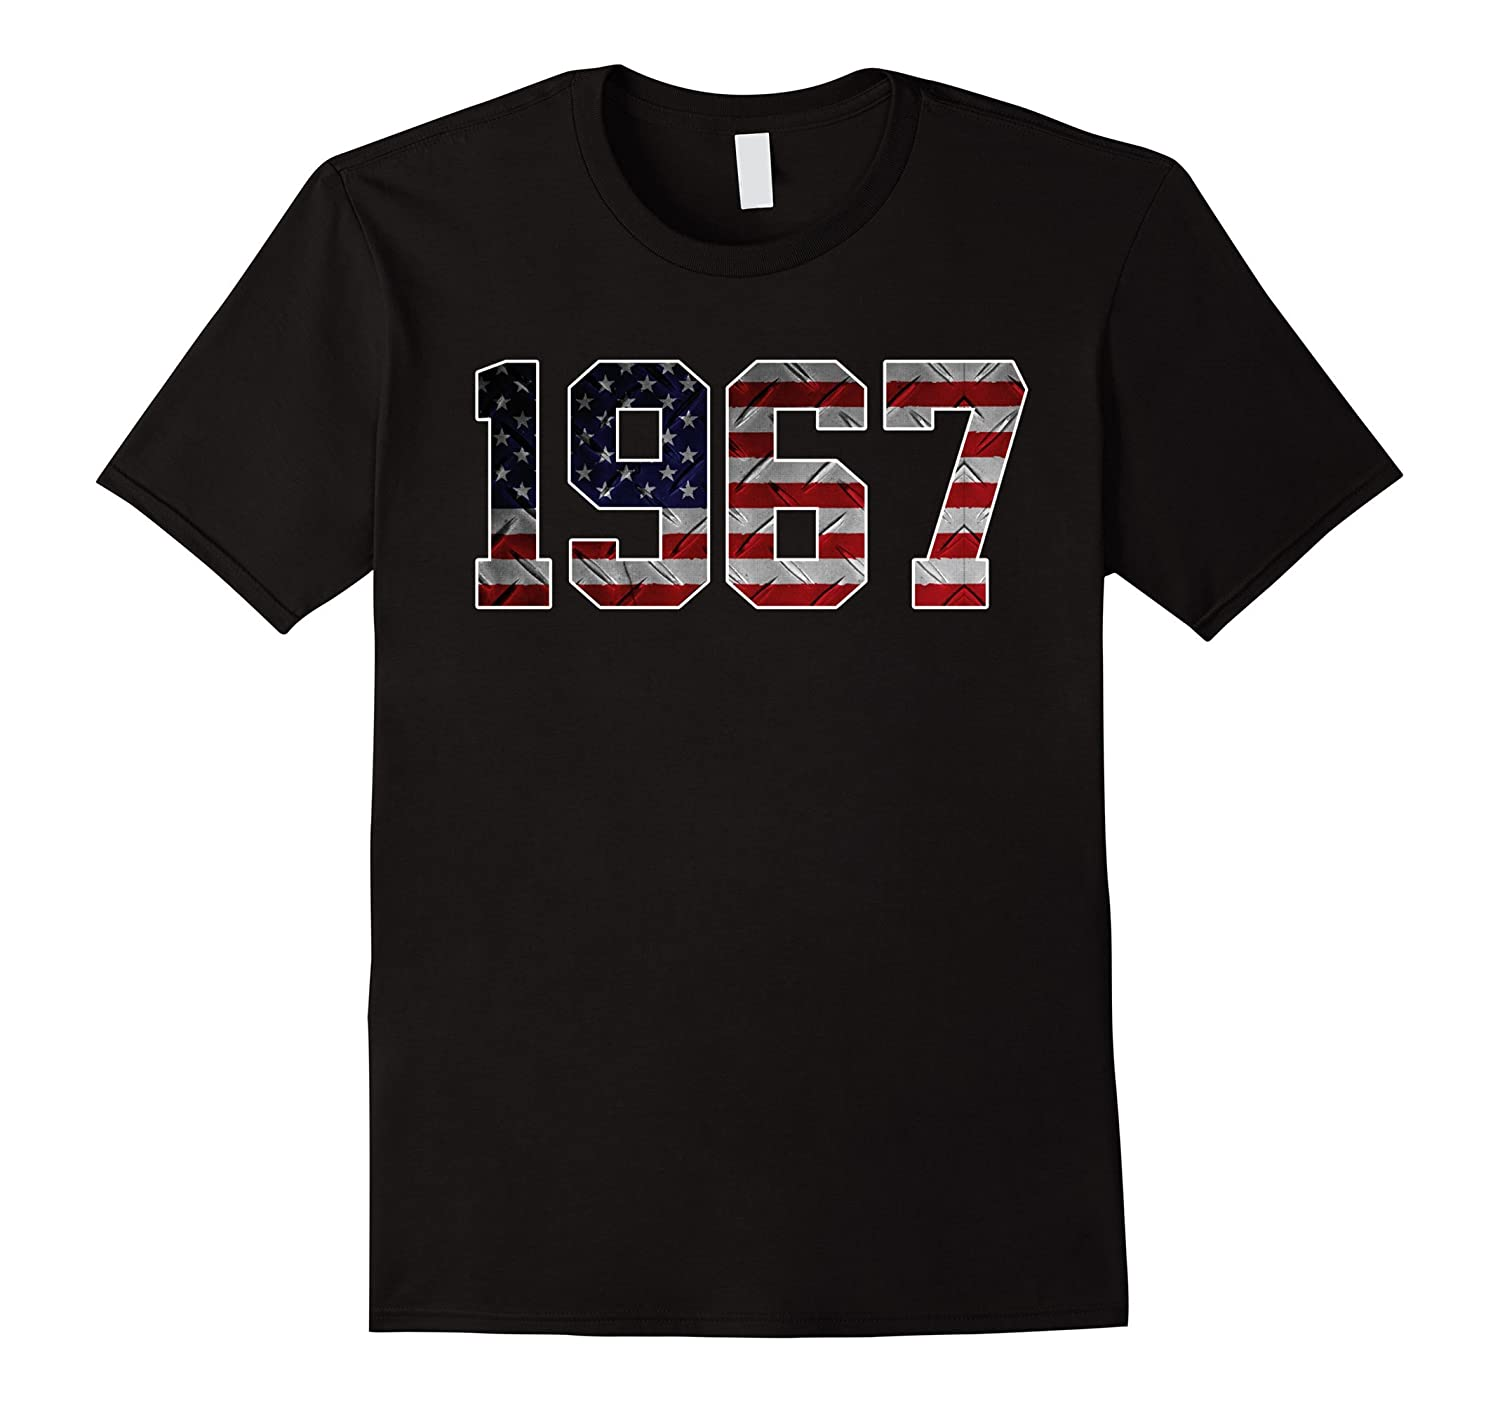 1967 American Flag T-shirt 50th Birthday Gifts-PL